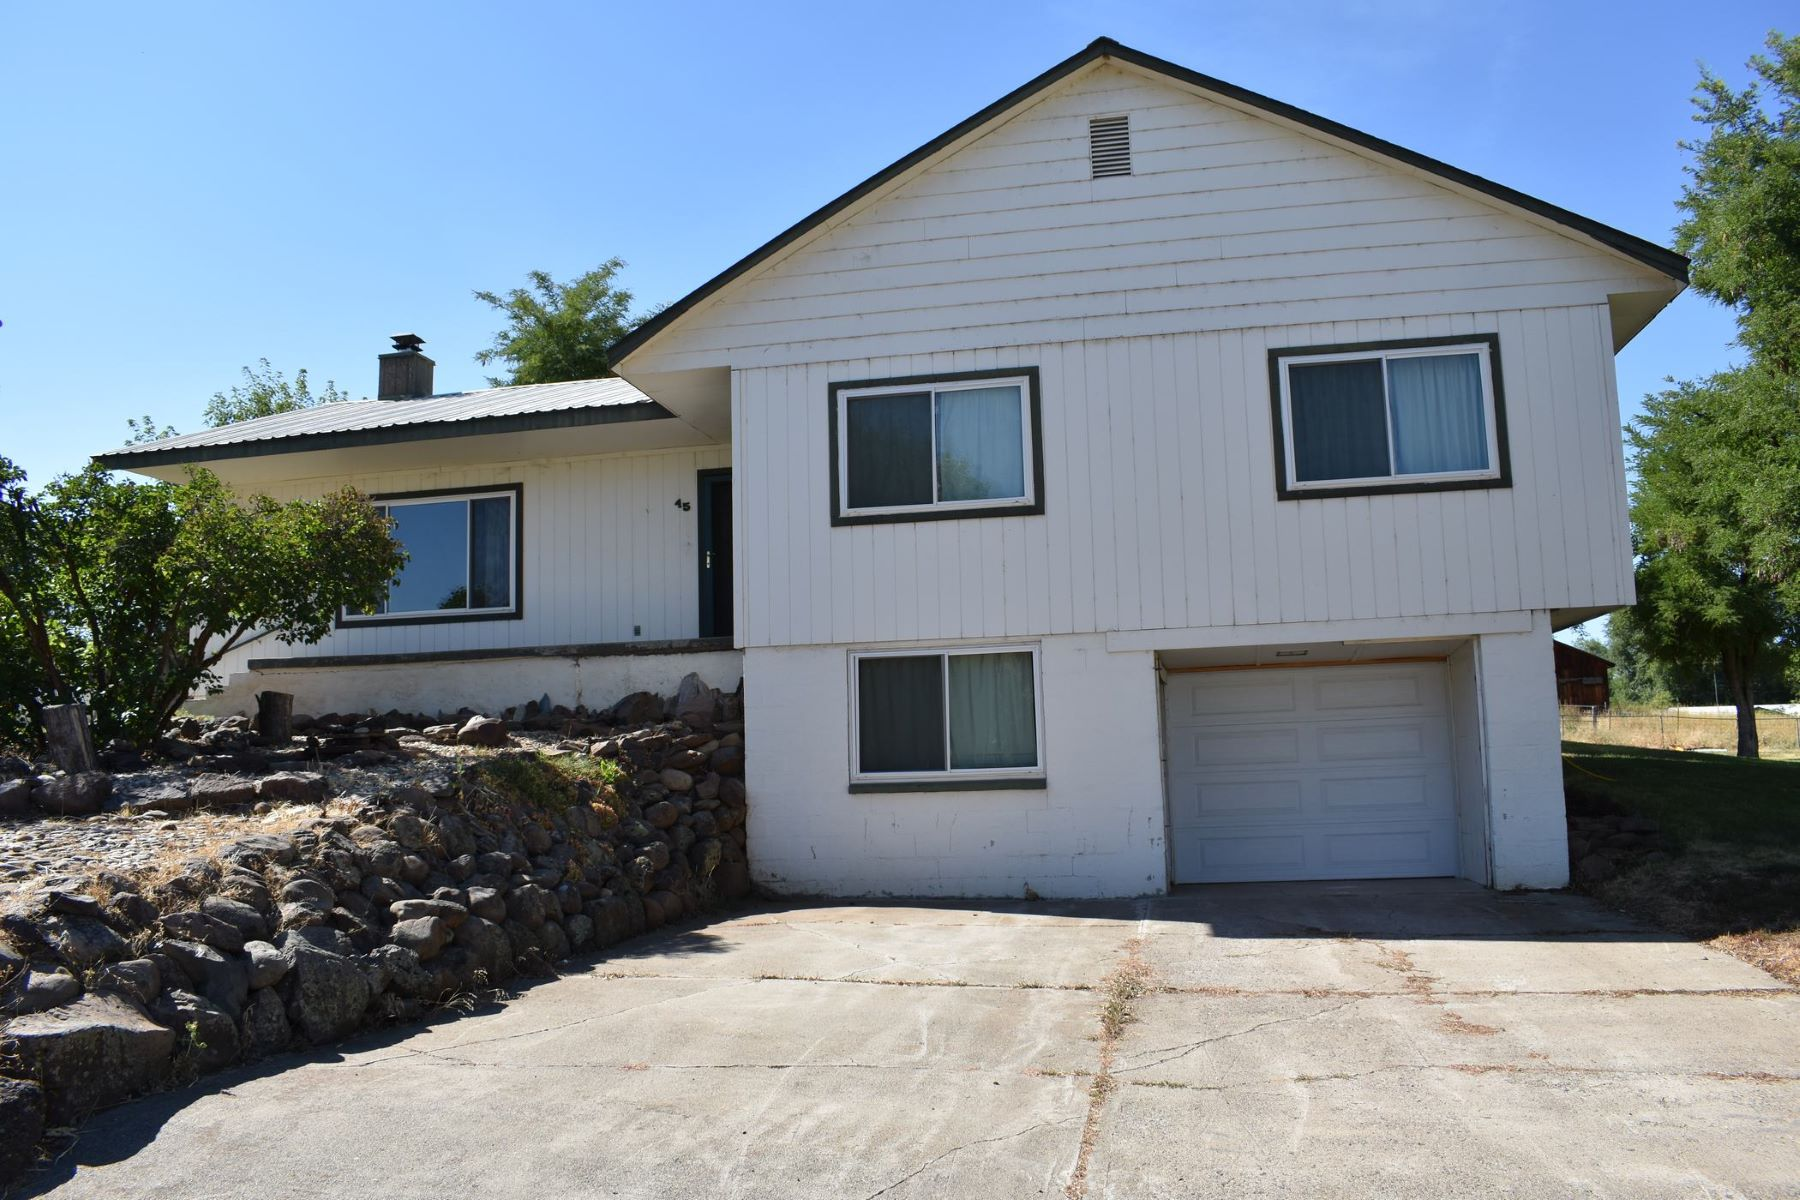 Single Family Home for Sale at 45 1st Street, Cambridge 45 N 1st St Cambridge, Idaho 83610